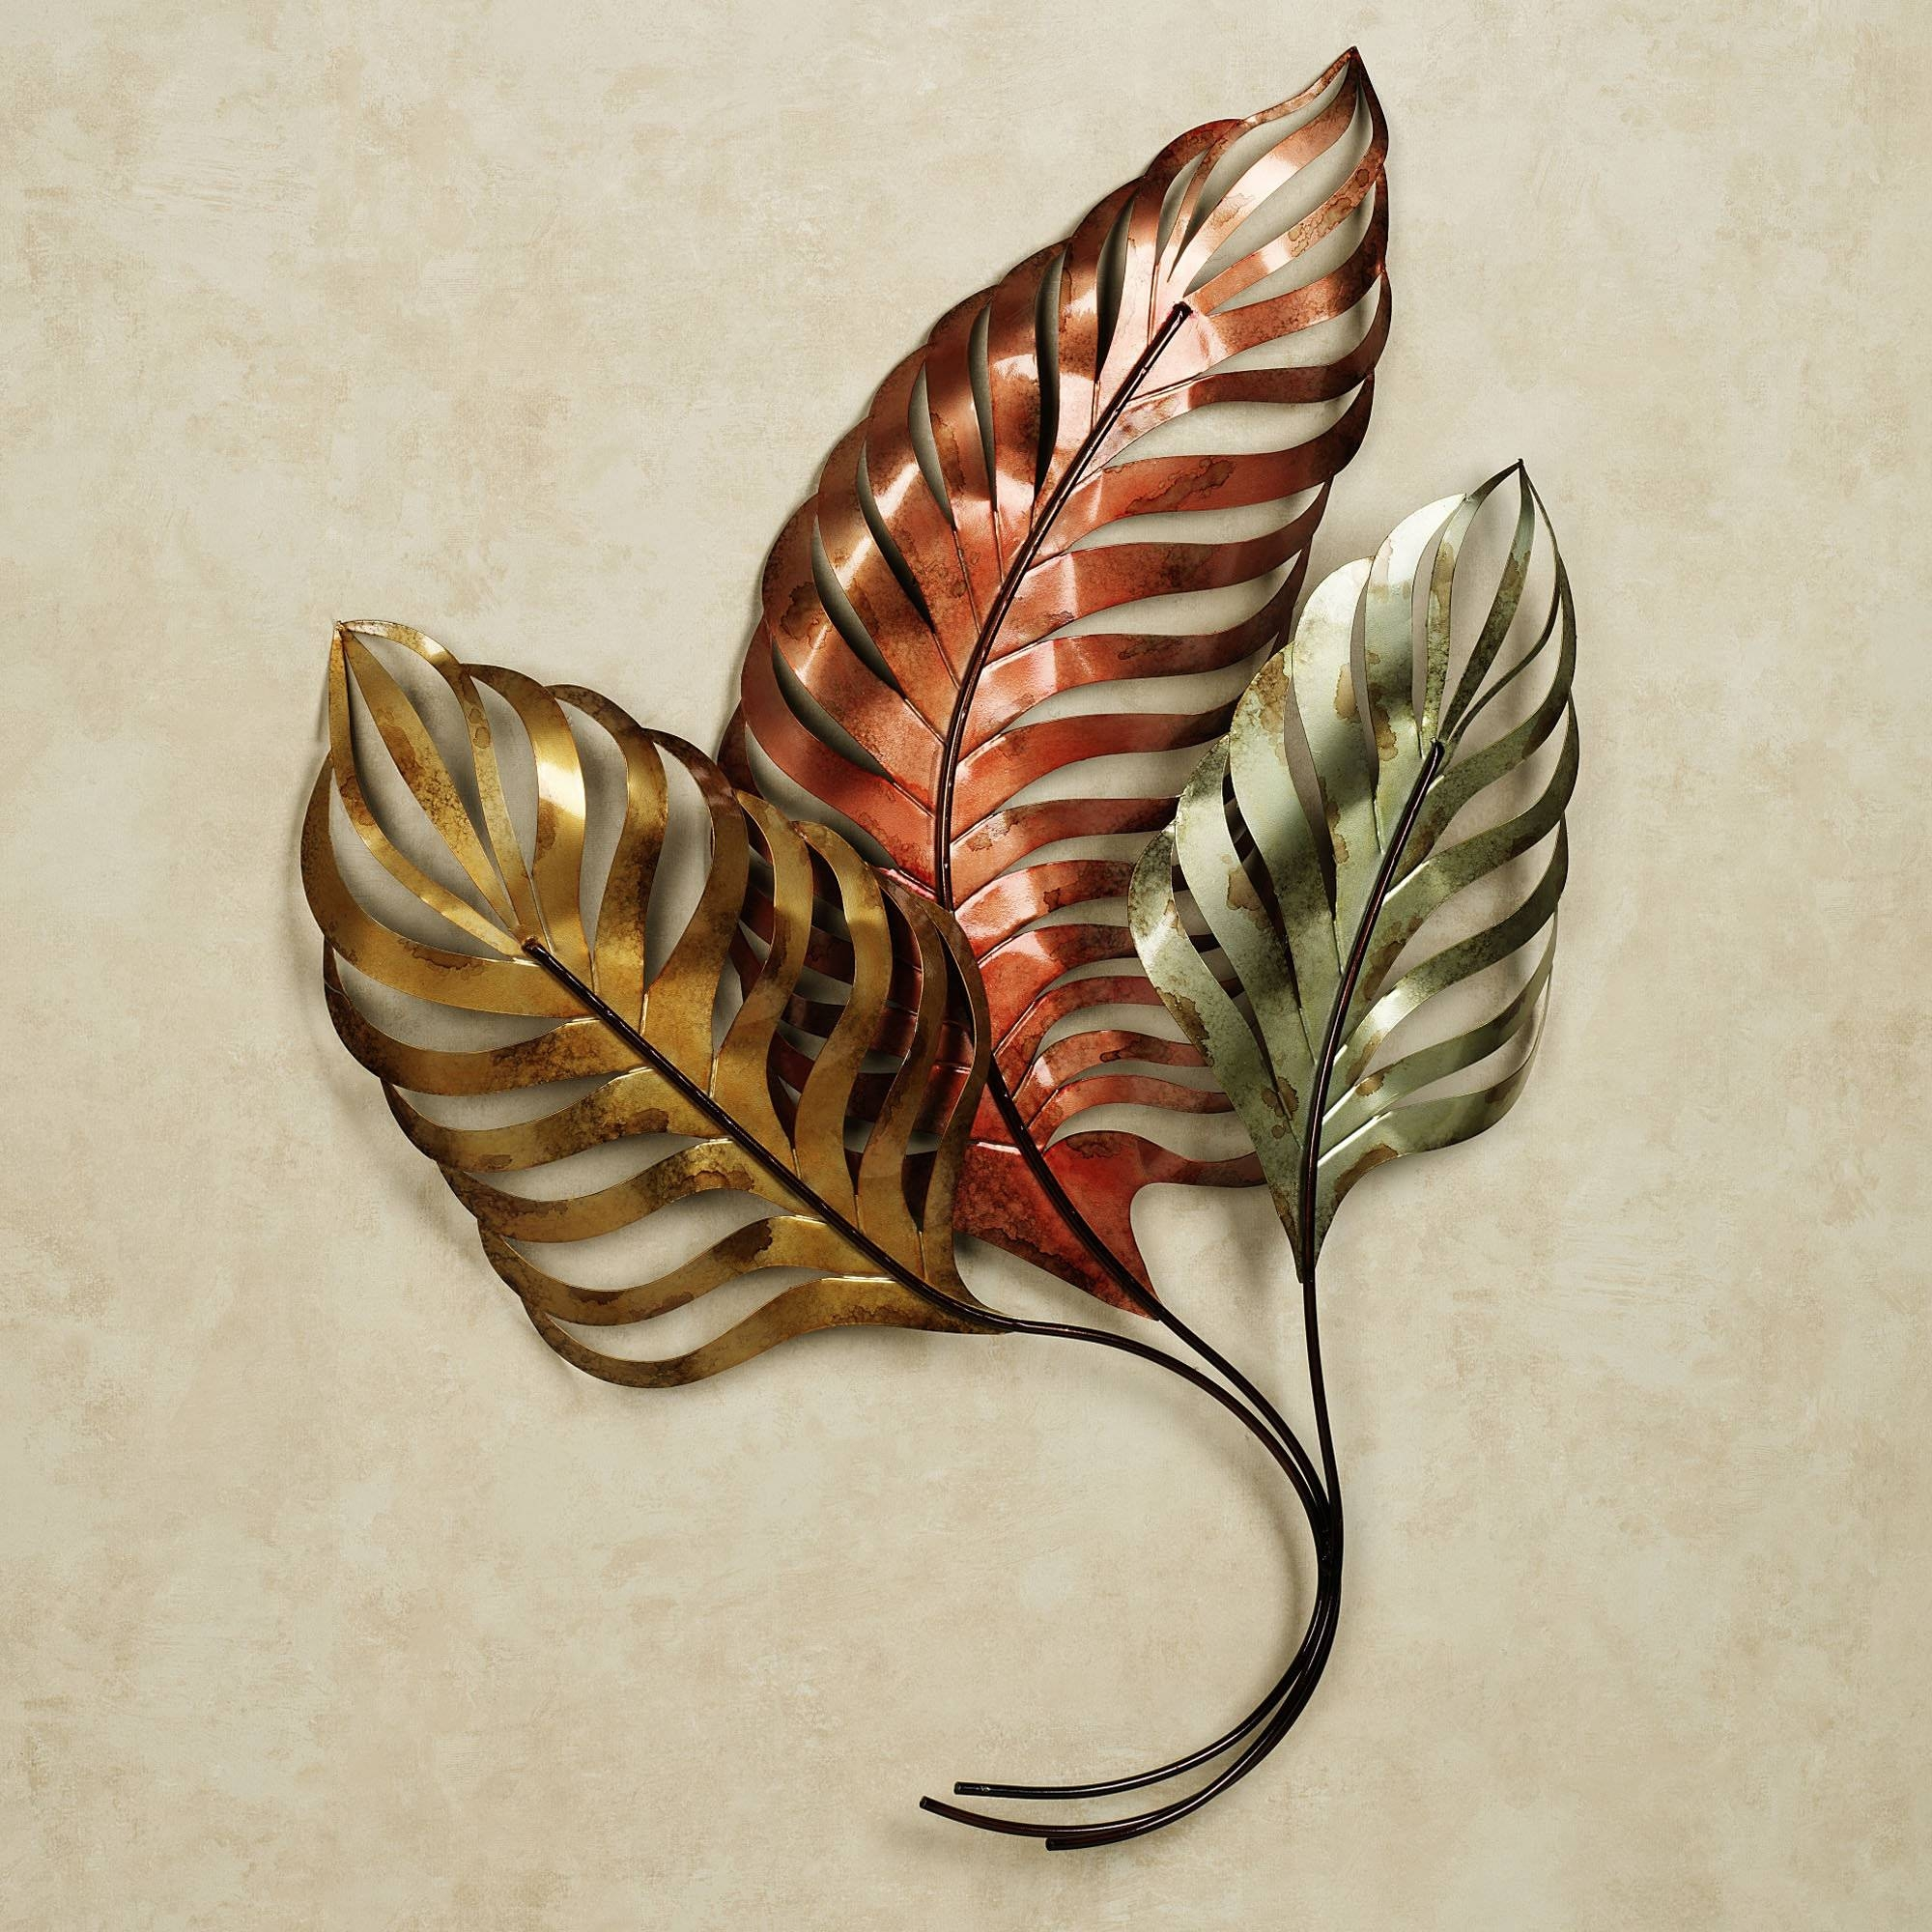 Wall Art Designs: Metal Wall Art Home Sunlit Palms Tropical Metal With Regard To Latest Metal Wall Art Sculptures (View 14 of 20)